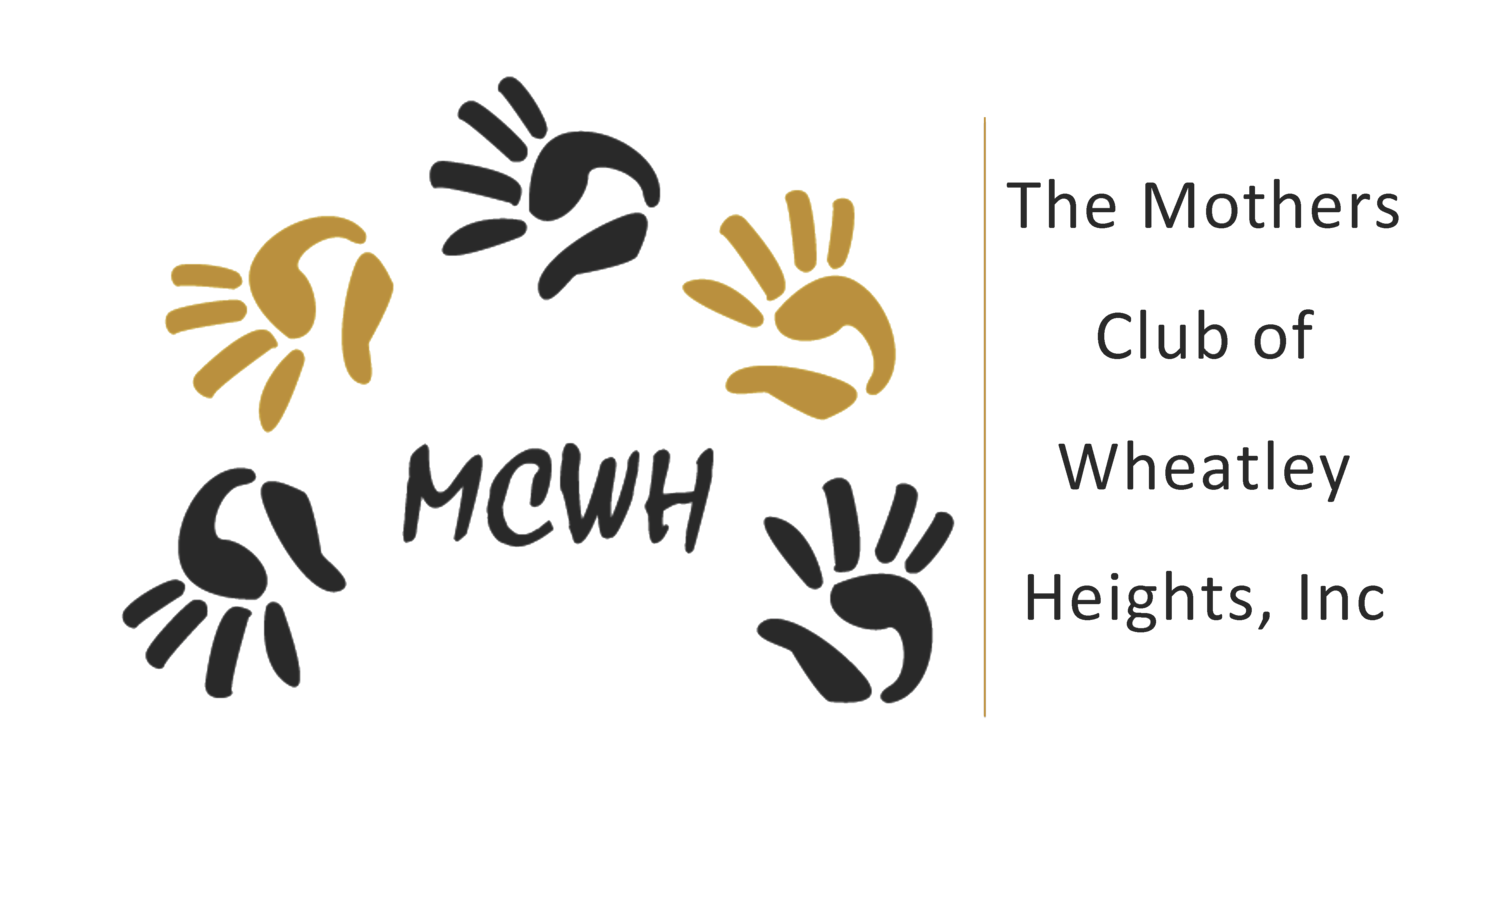 The Mothers Club of Wheatley Heights, Inc.